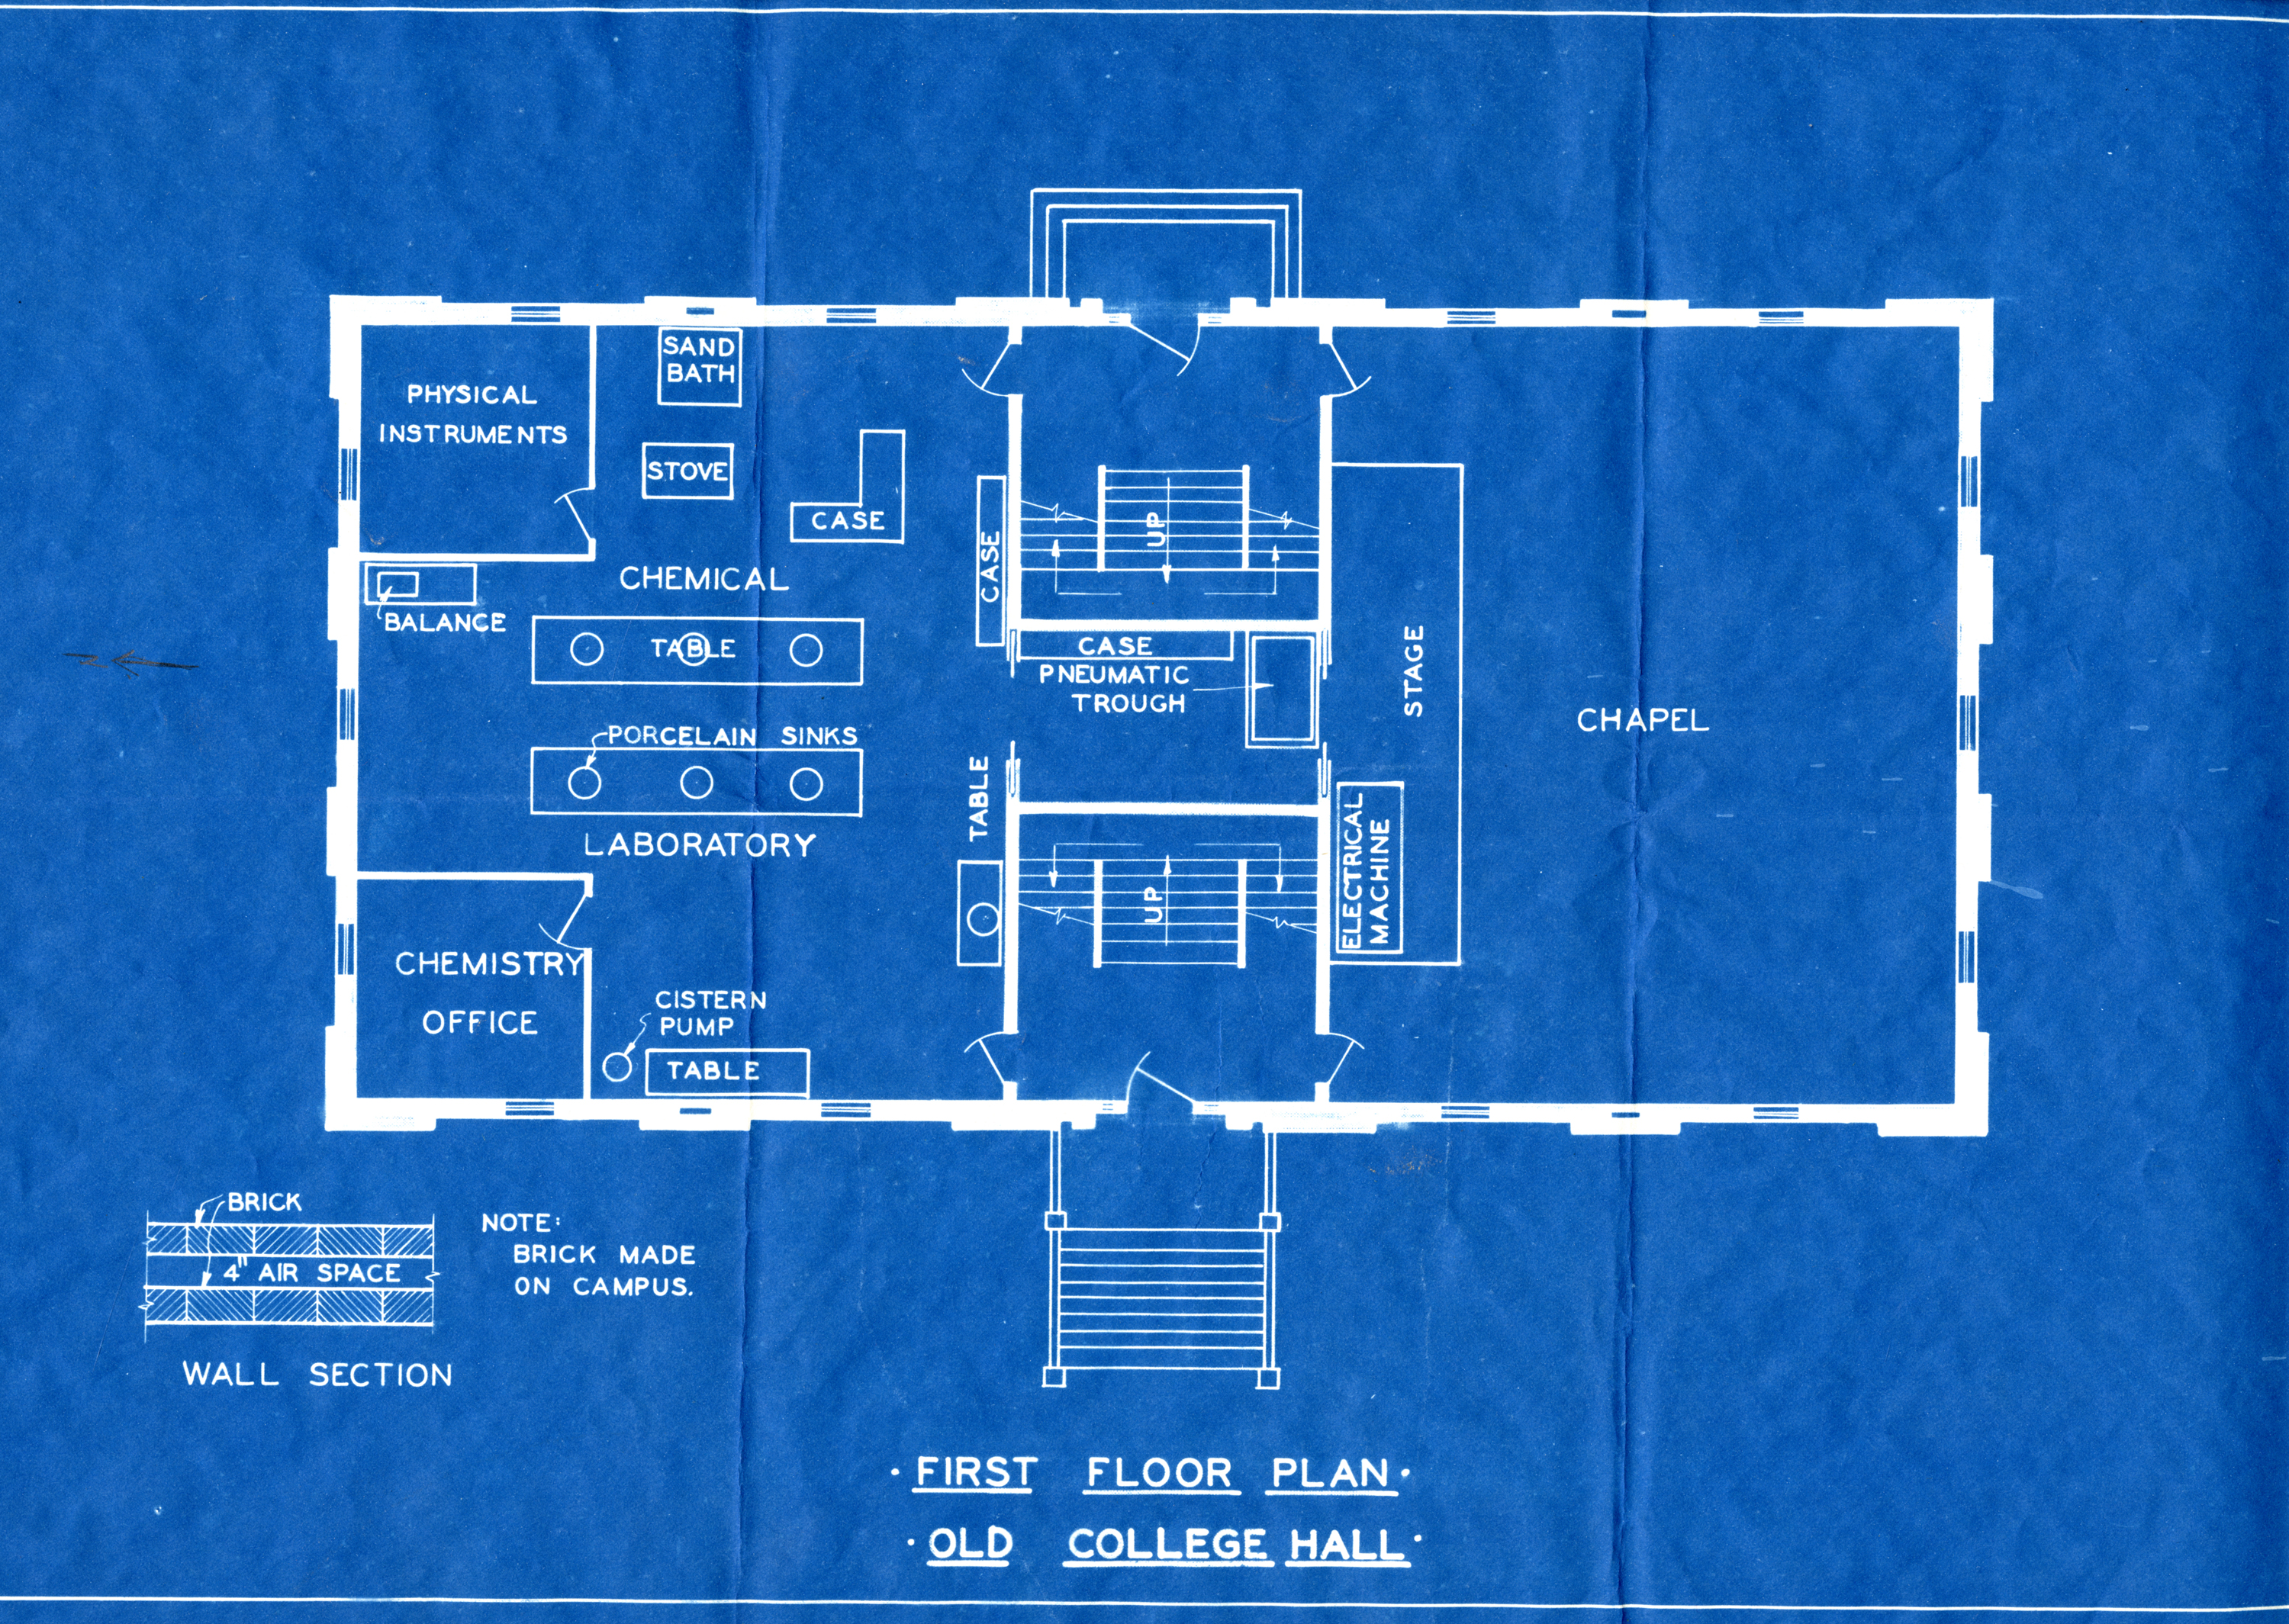 Blue Print for College Hall, First Floor